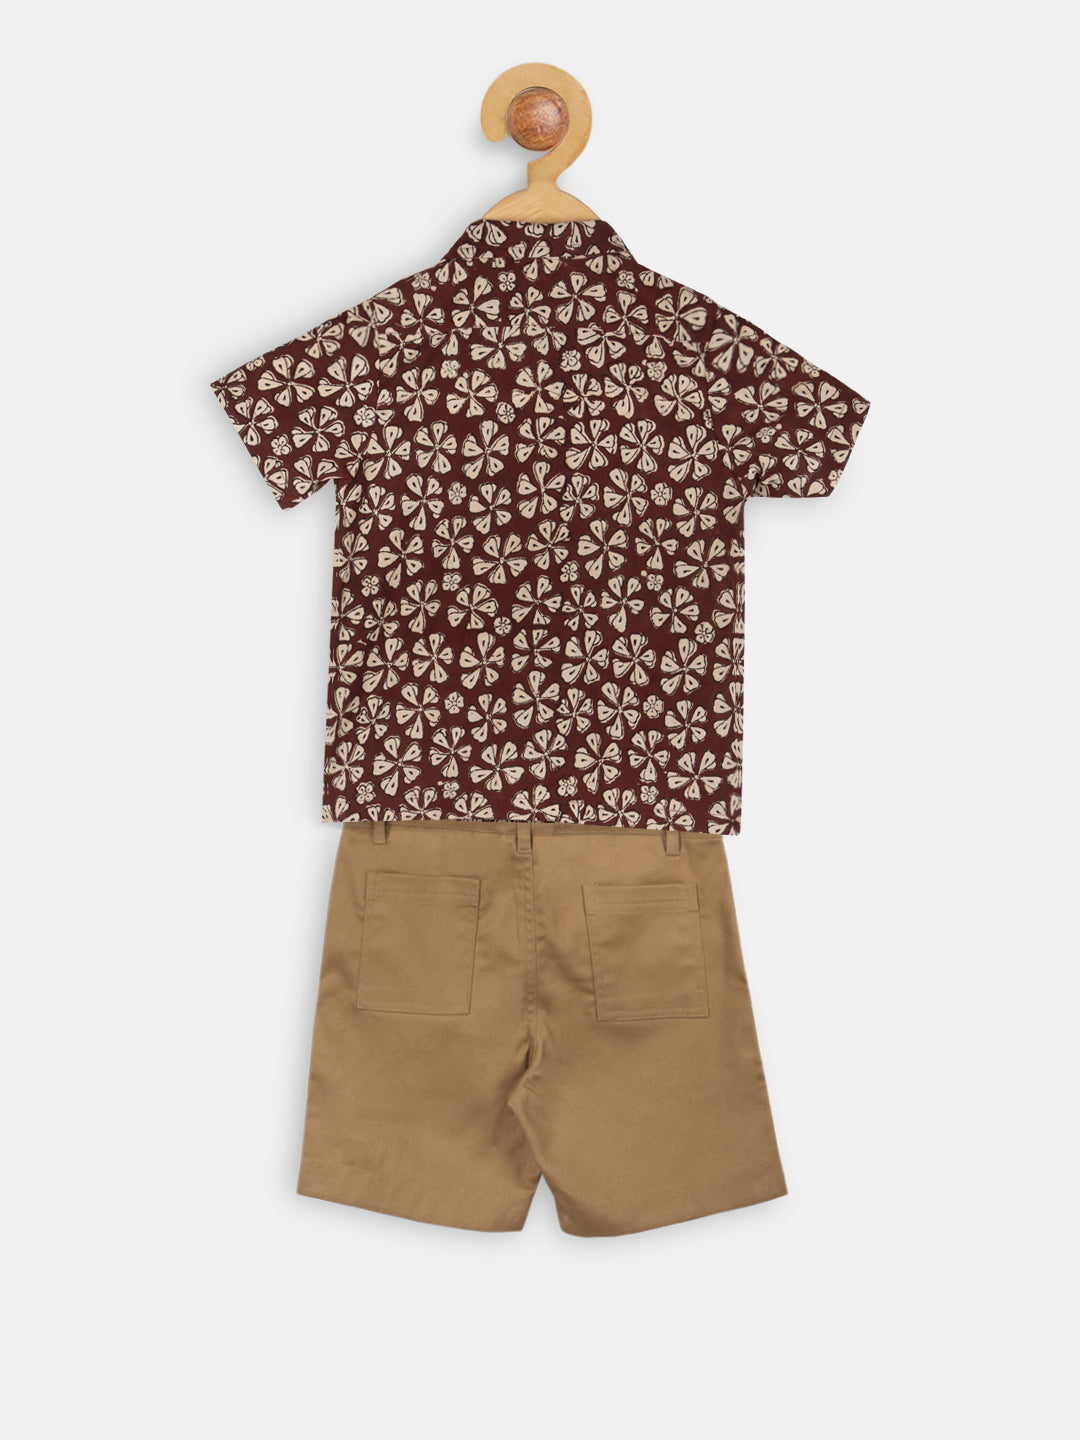 Maroon print shirt with khaki shorts